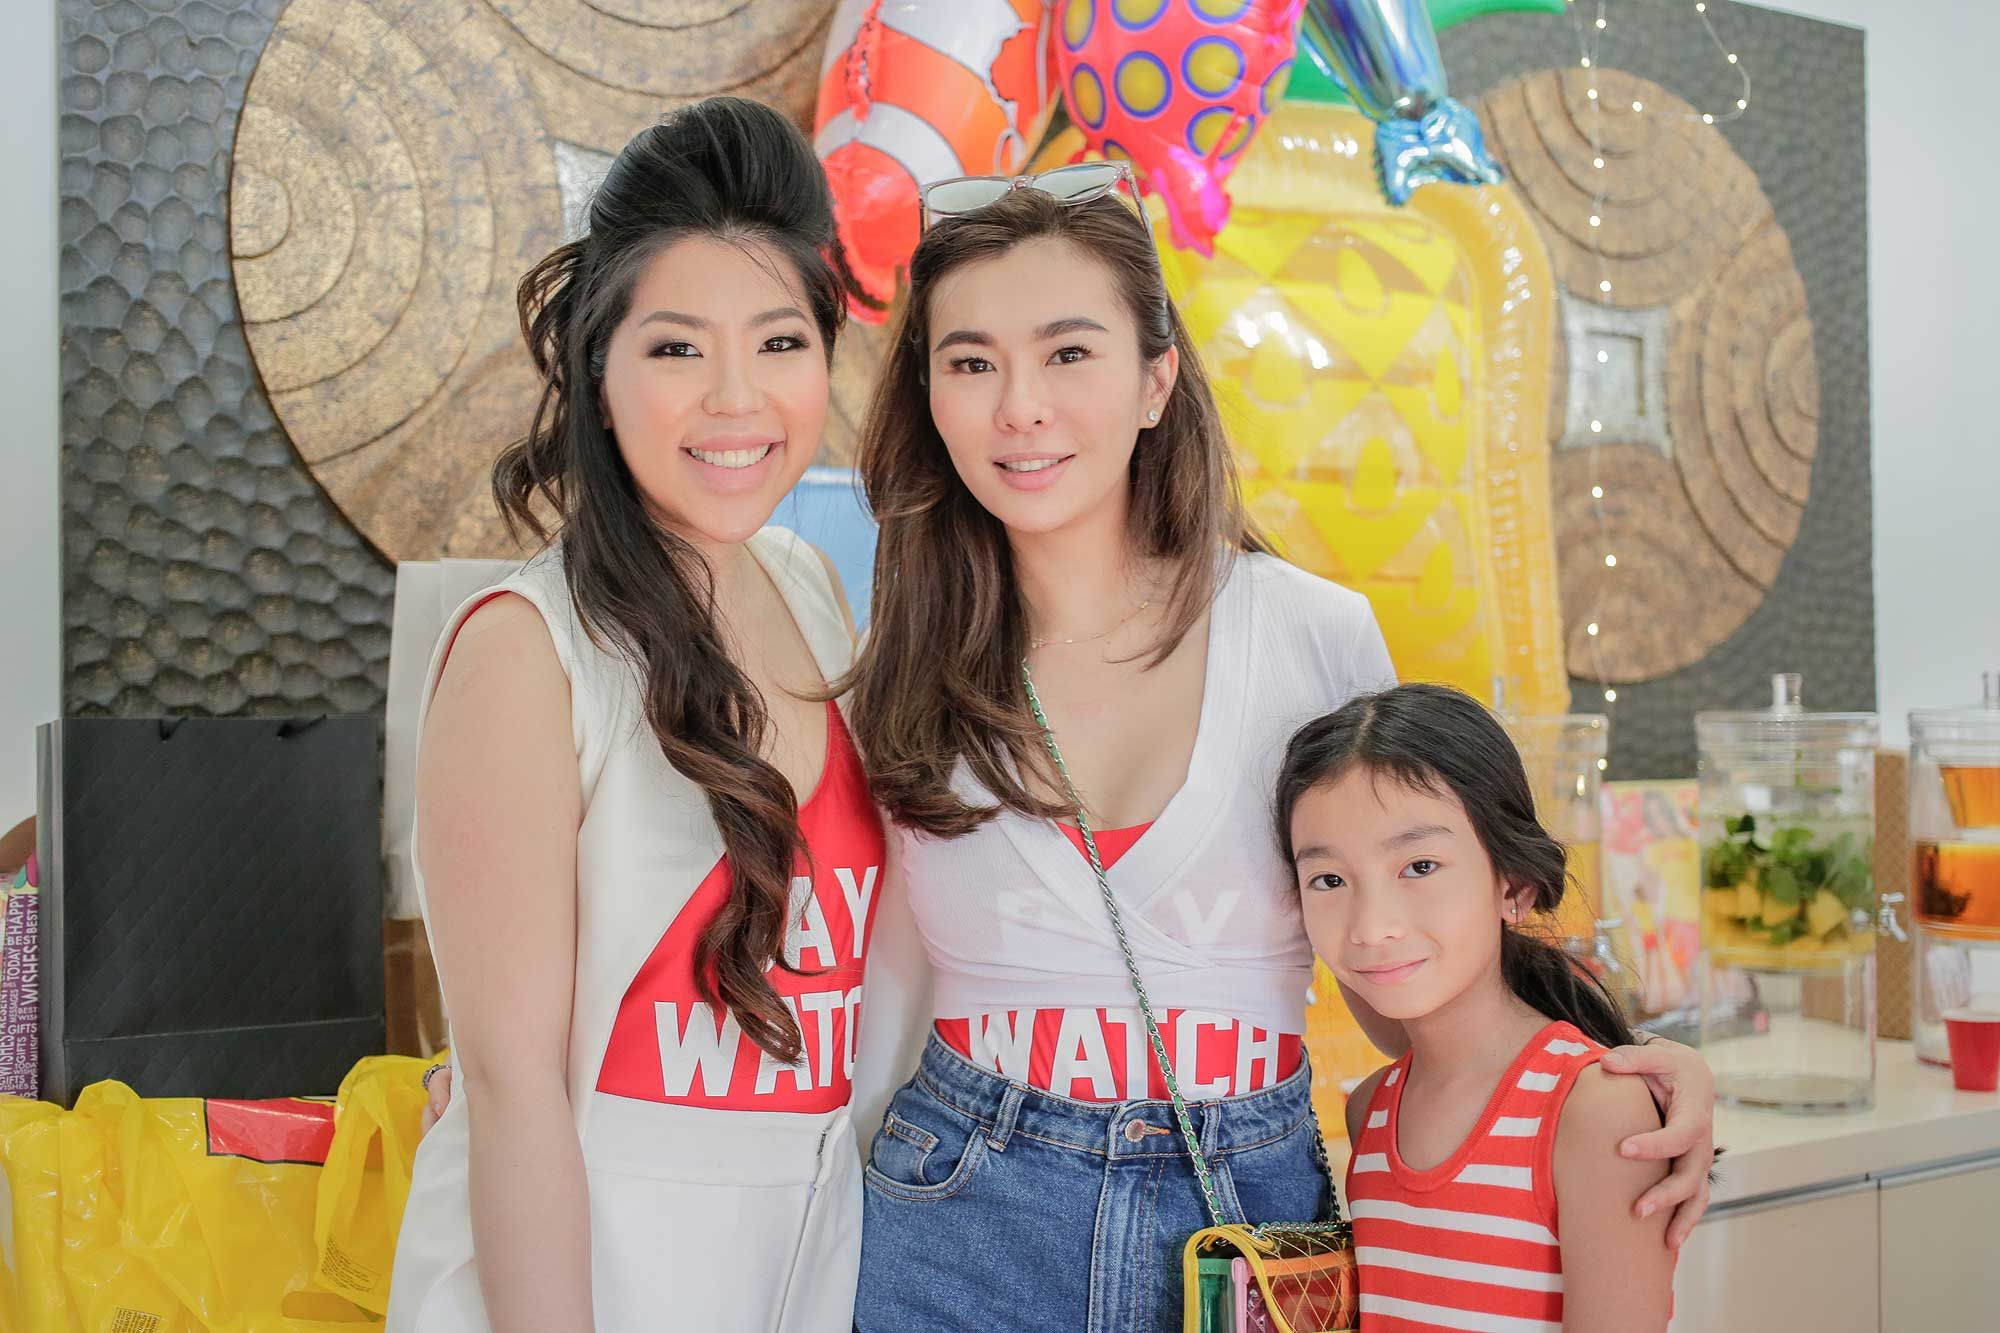 Elizabeth Lee-Yong, Datin Dian Lee and Jora Dream Lim